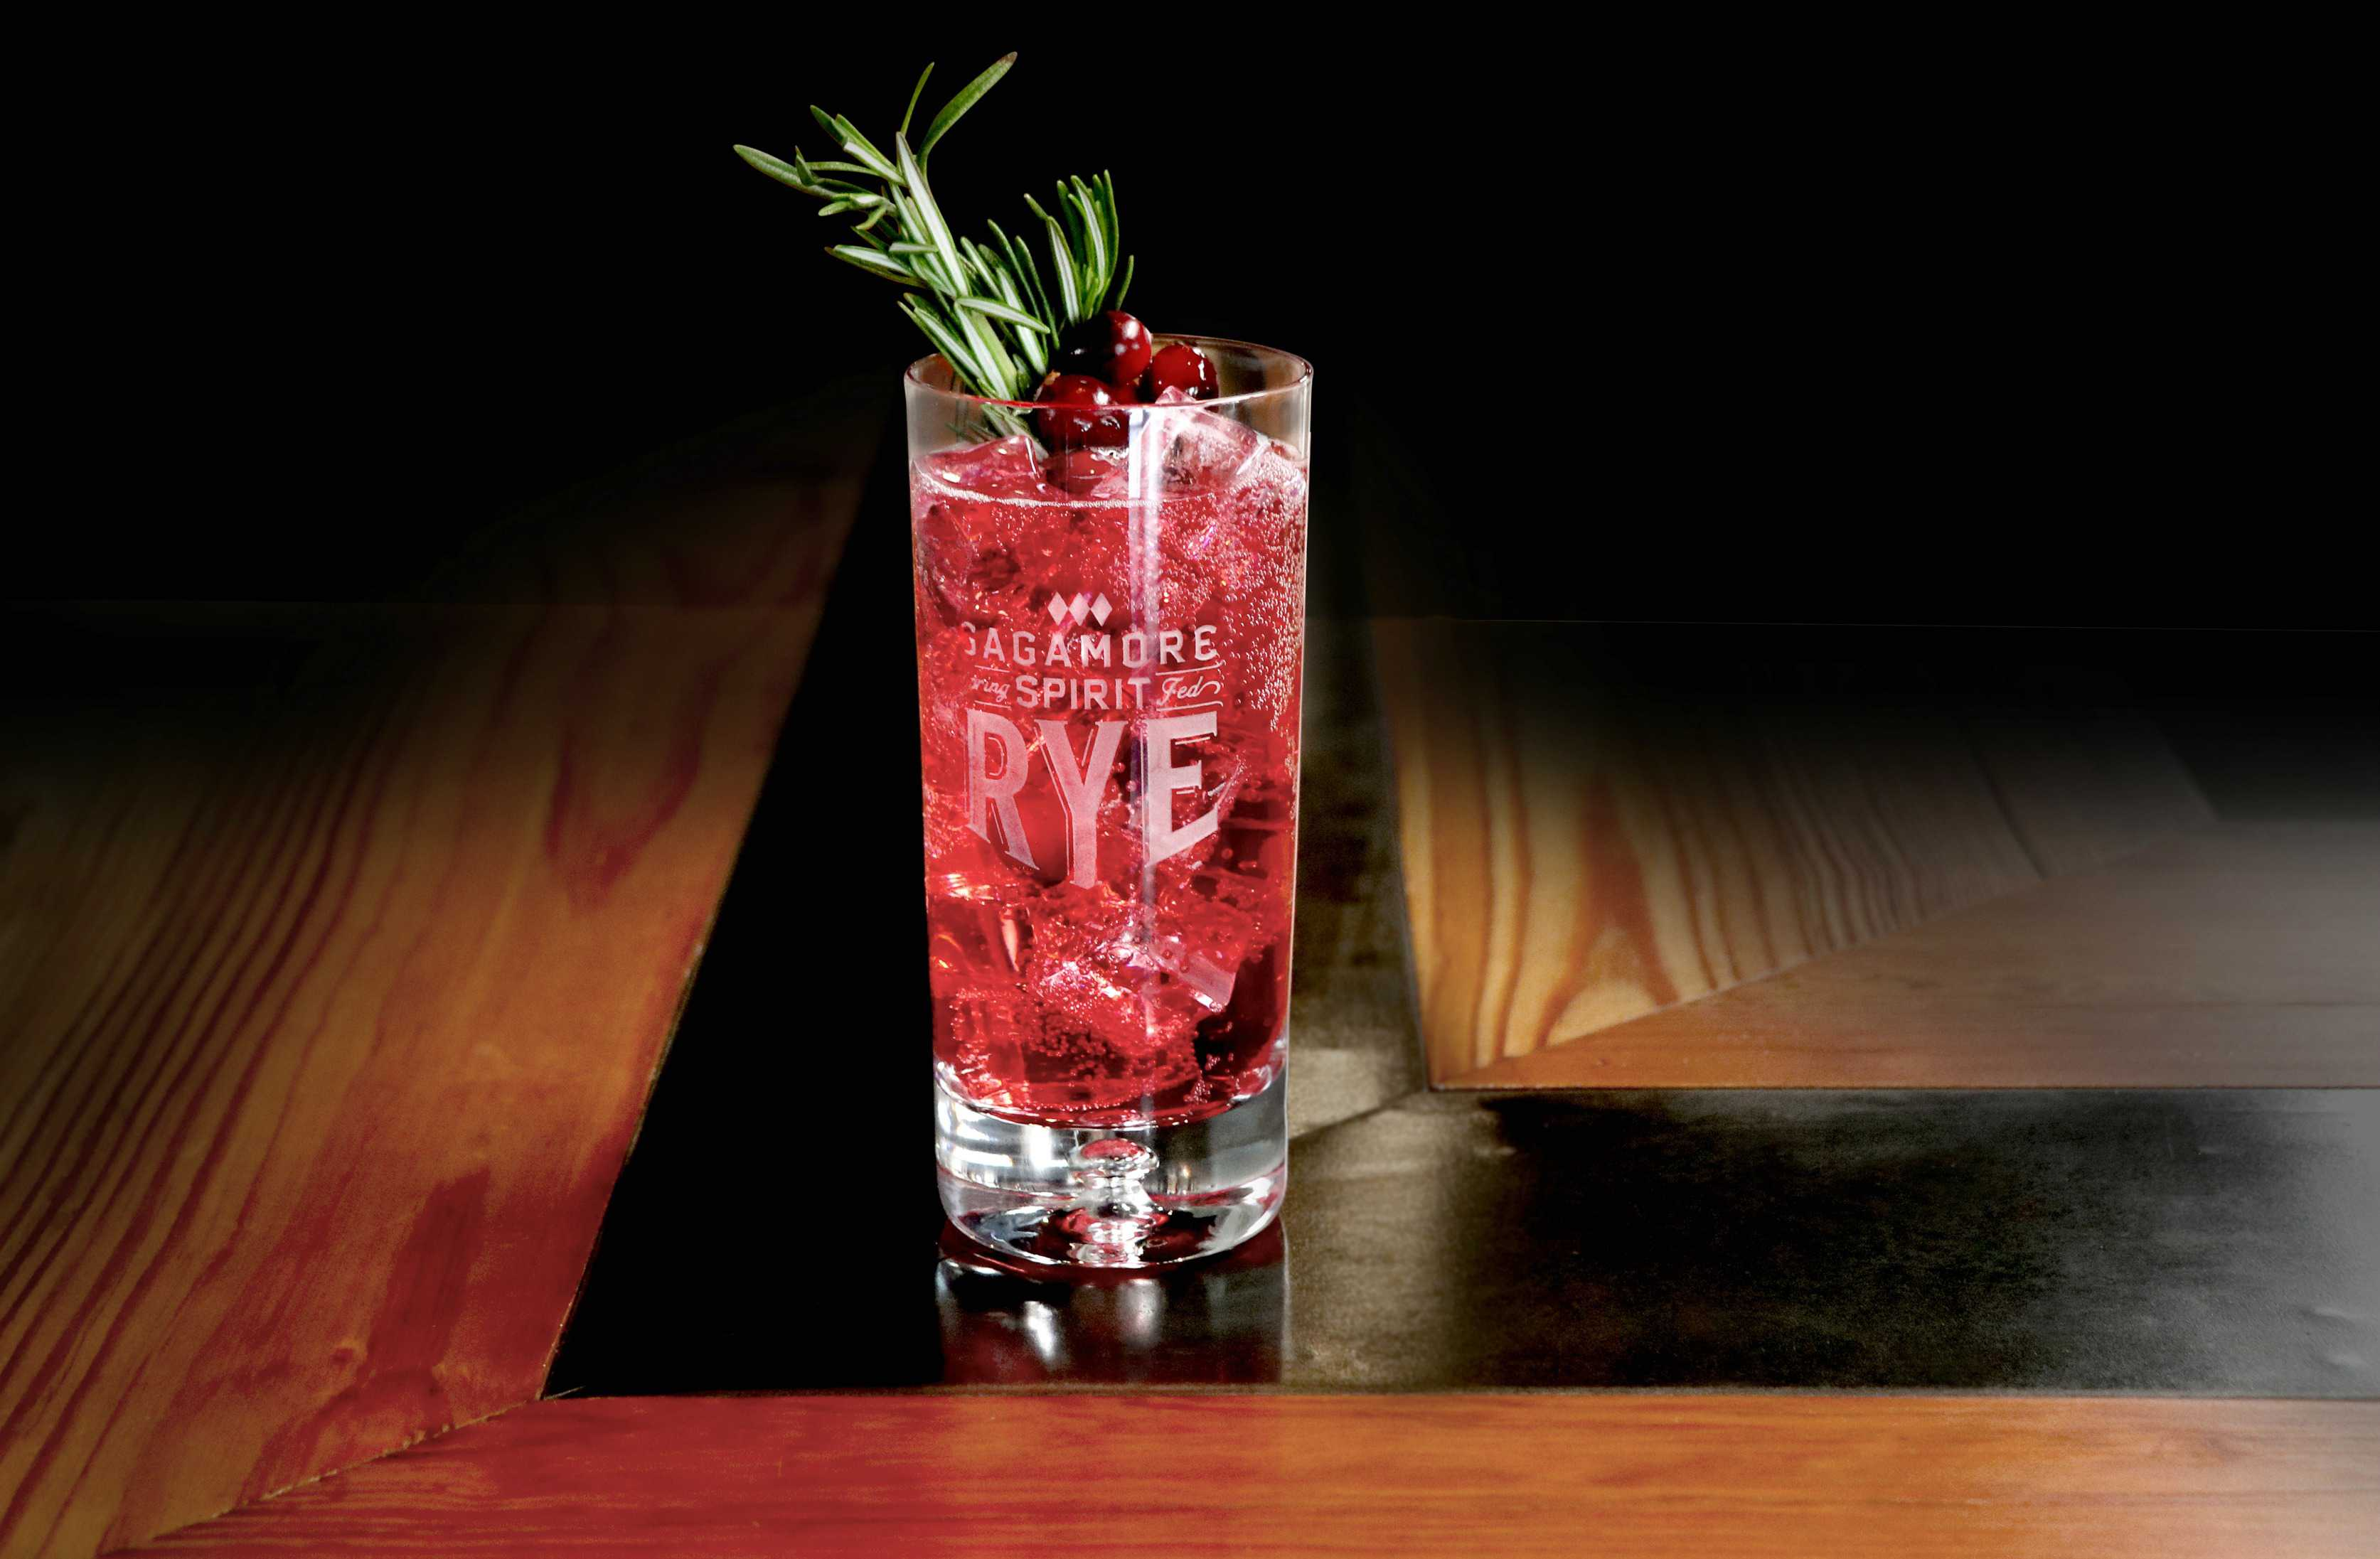 Holiday Whiskey Fizz is a bubbly holiday cocktail featuring Sagamore Spirits rye whiskey, club soda, cranberry syrup and lime juice.